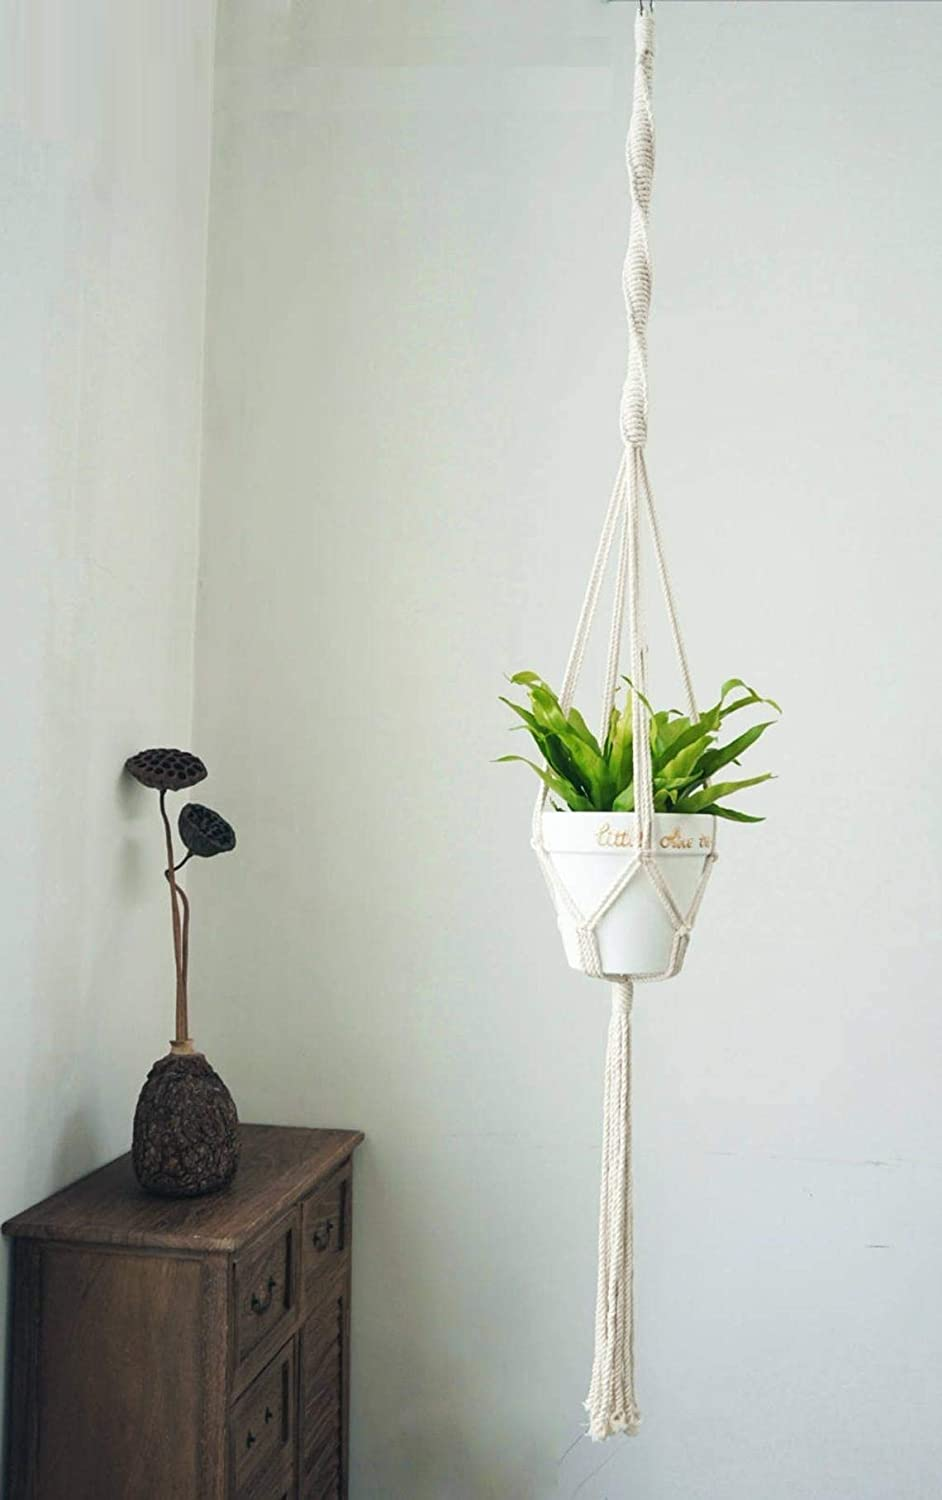 Macrame Cotton Plant Hanger | Rope Flower Pot Holder for Indoor Outdoor Balcony Garden | Home Décor, Decorative Interior Bohemian Basket Hanger